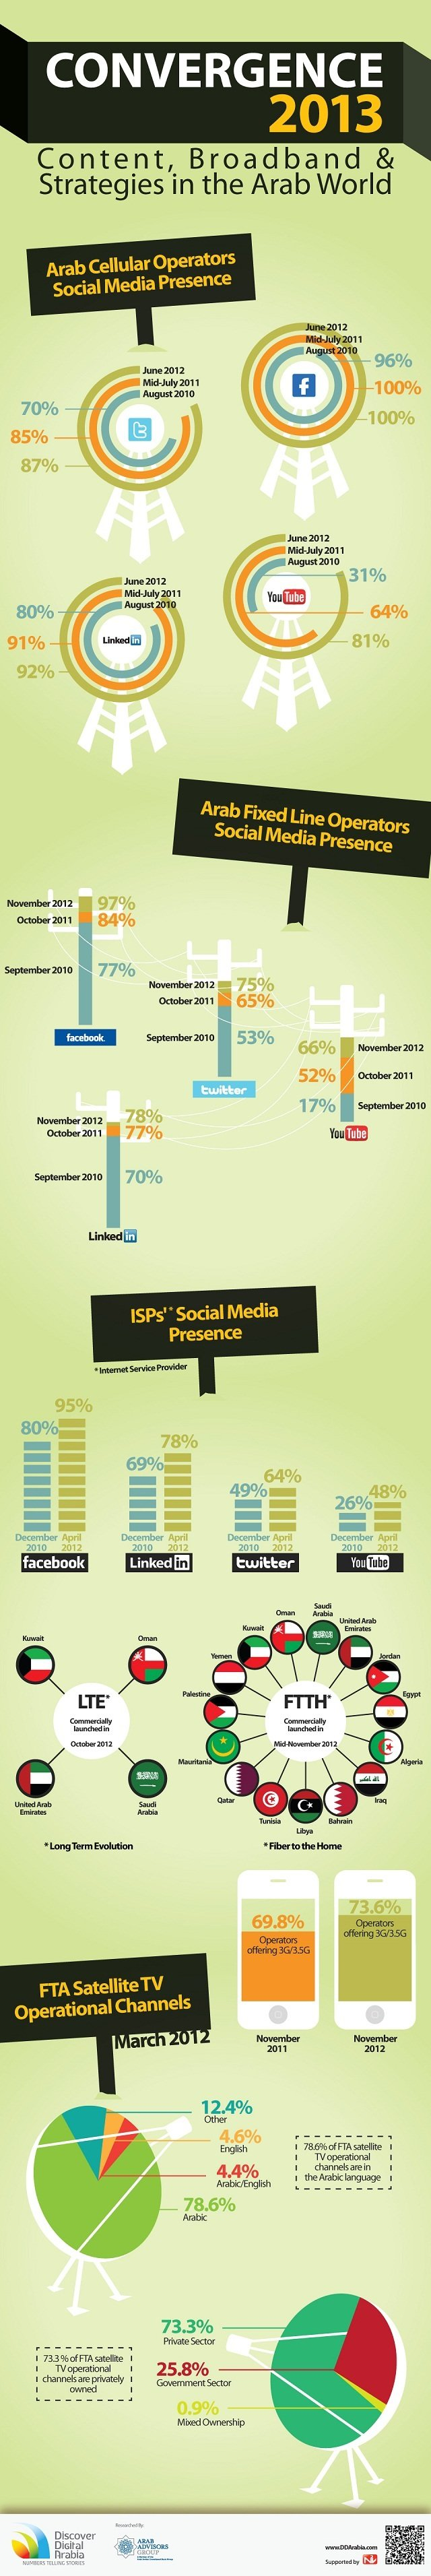 Arabic Digital Trends 2013 #Infographic